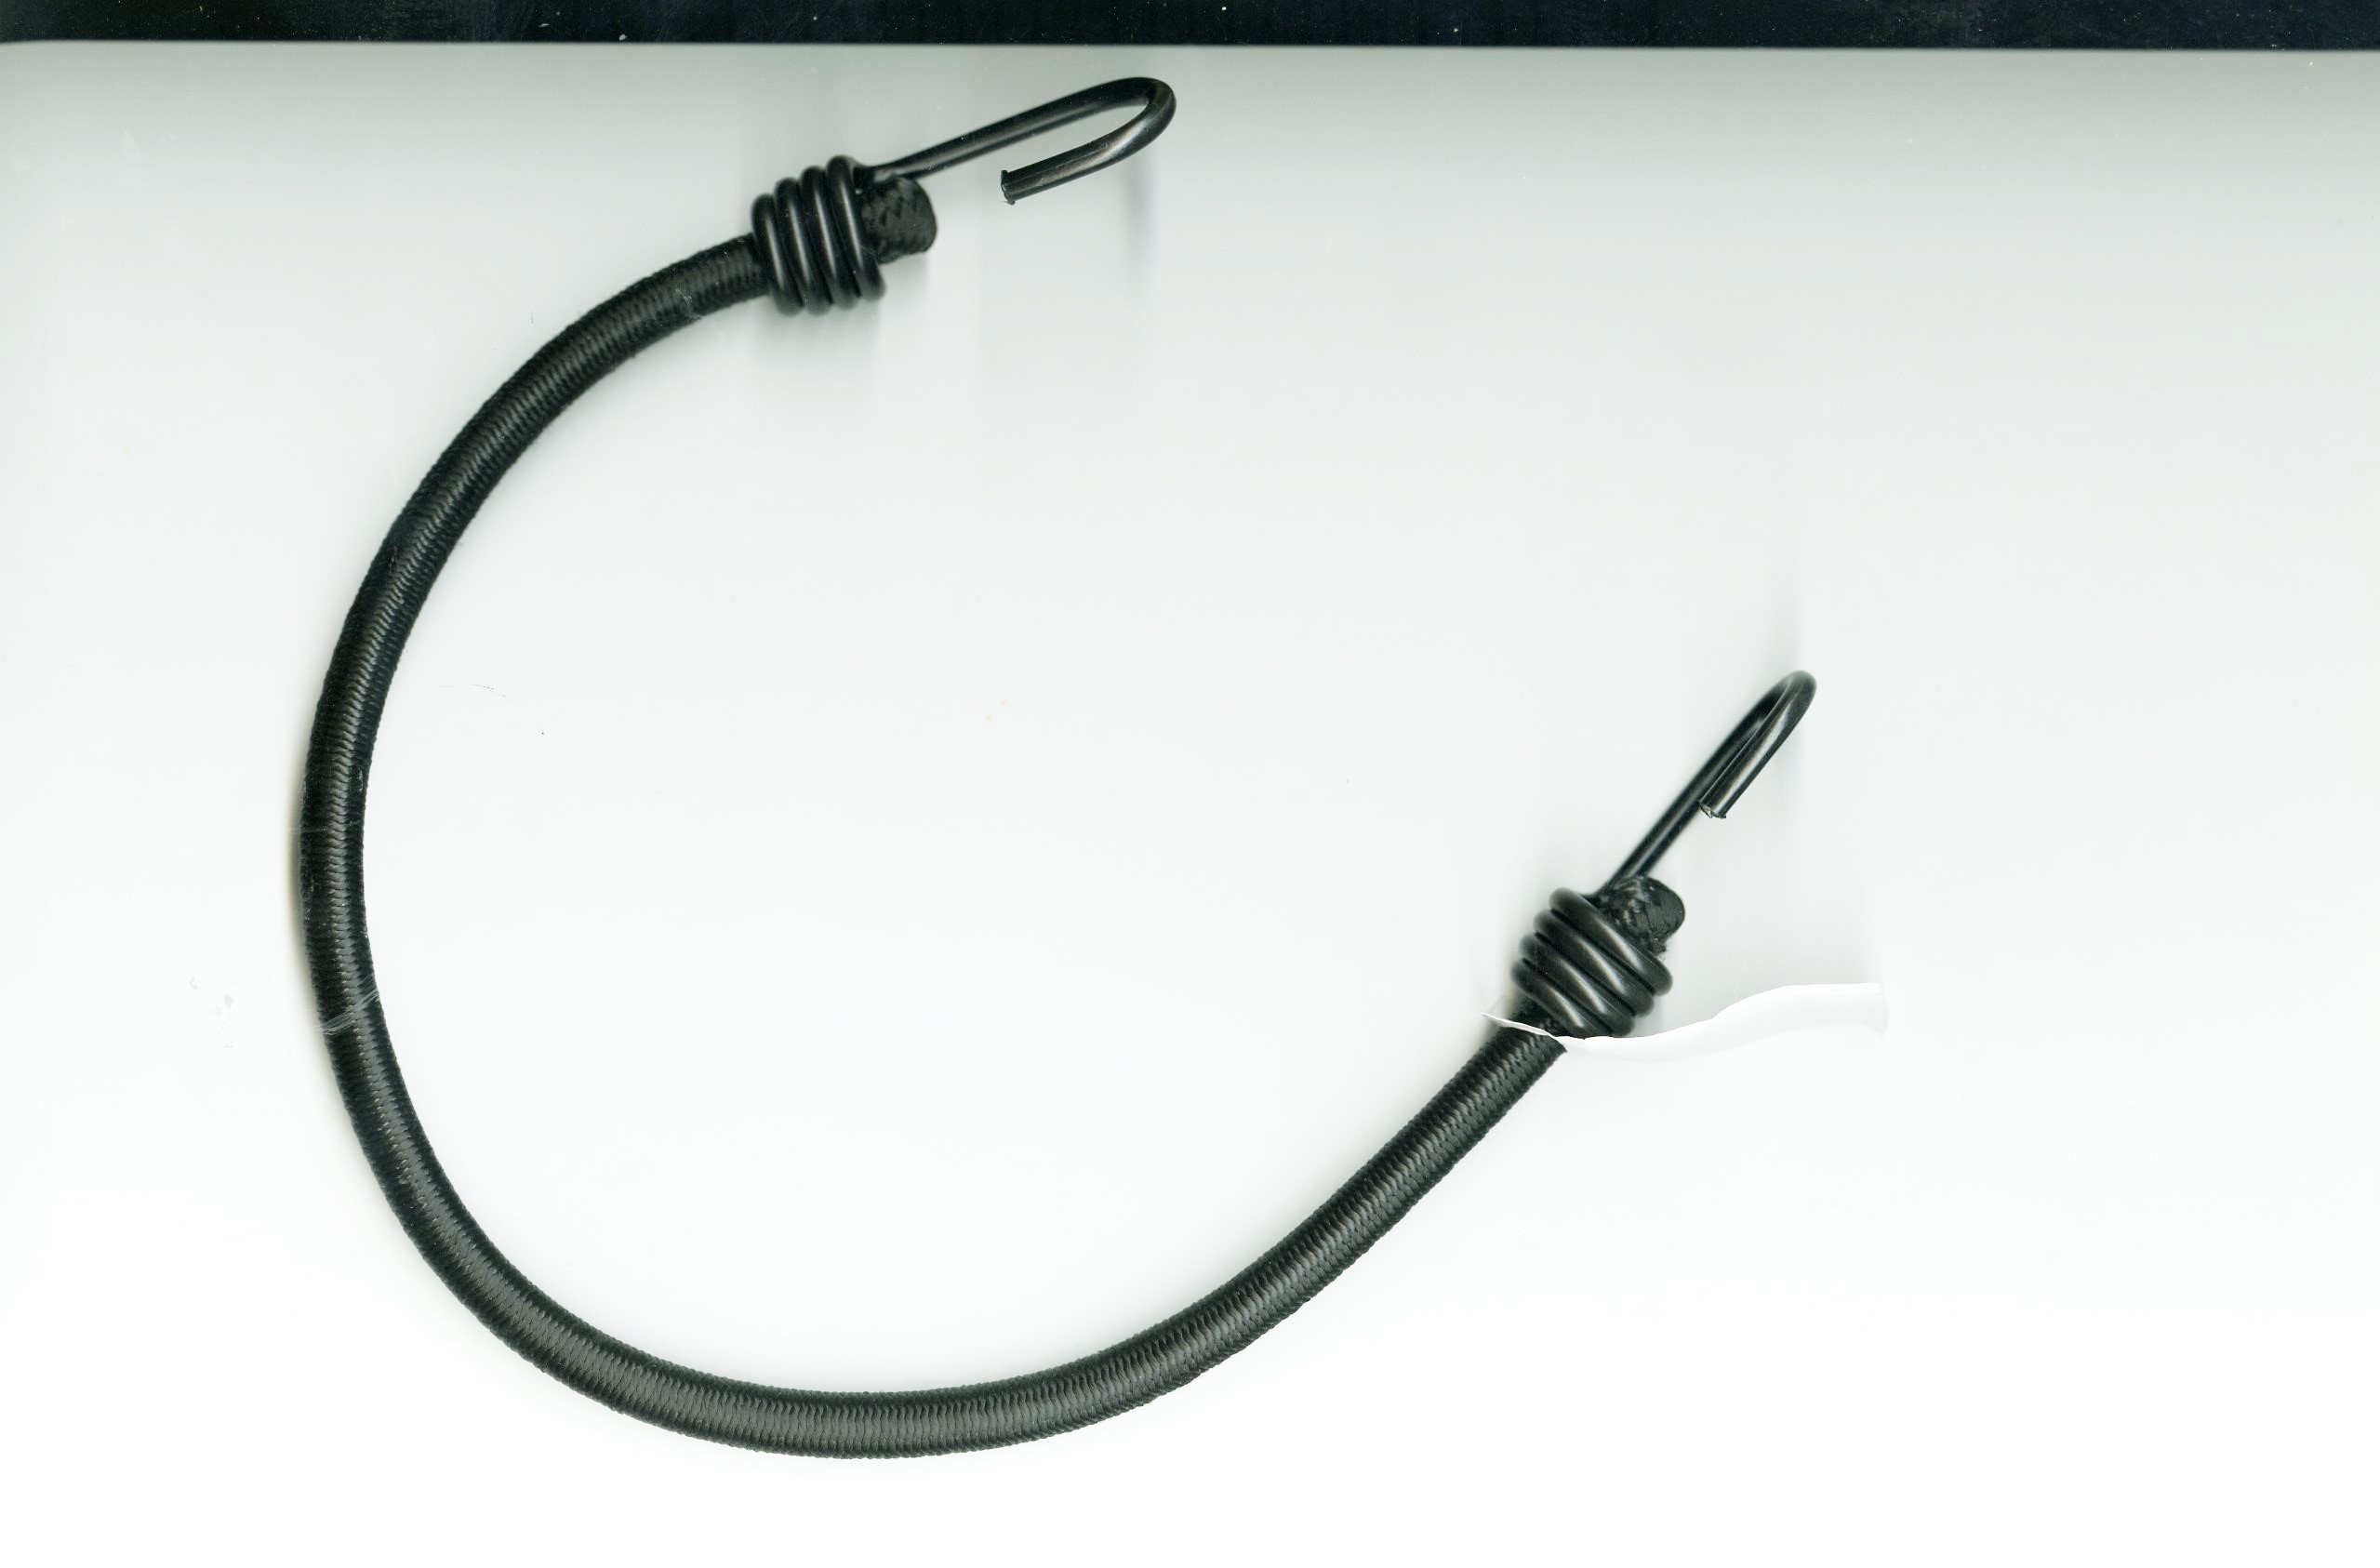 1/2 (12MM) X 24 Black Heavy Duty Bungee Cord Assembly with PVC Coated Hooks